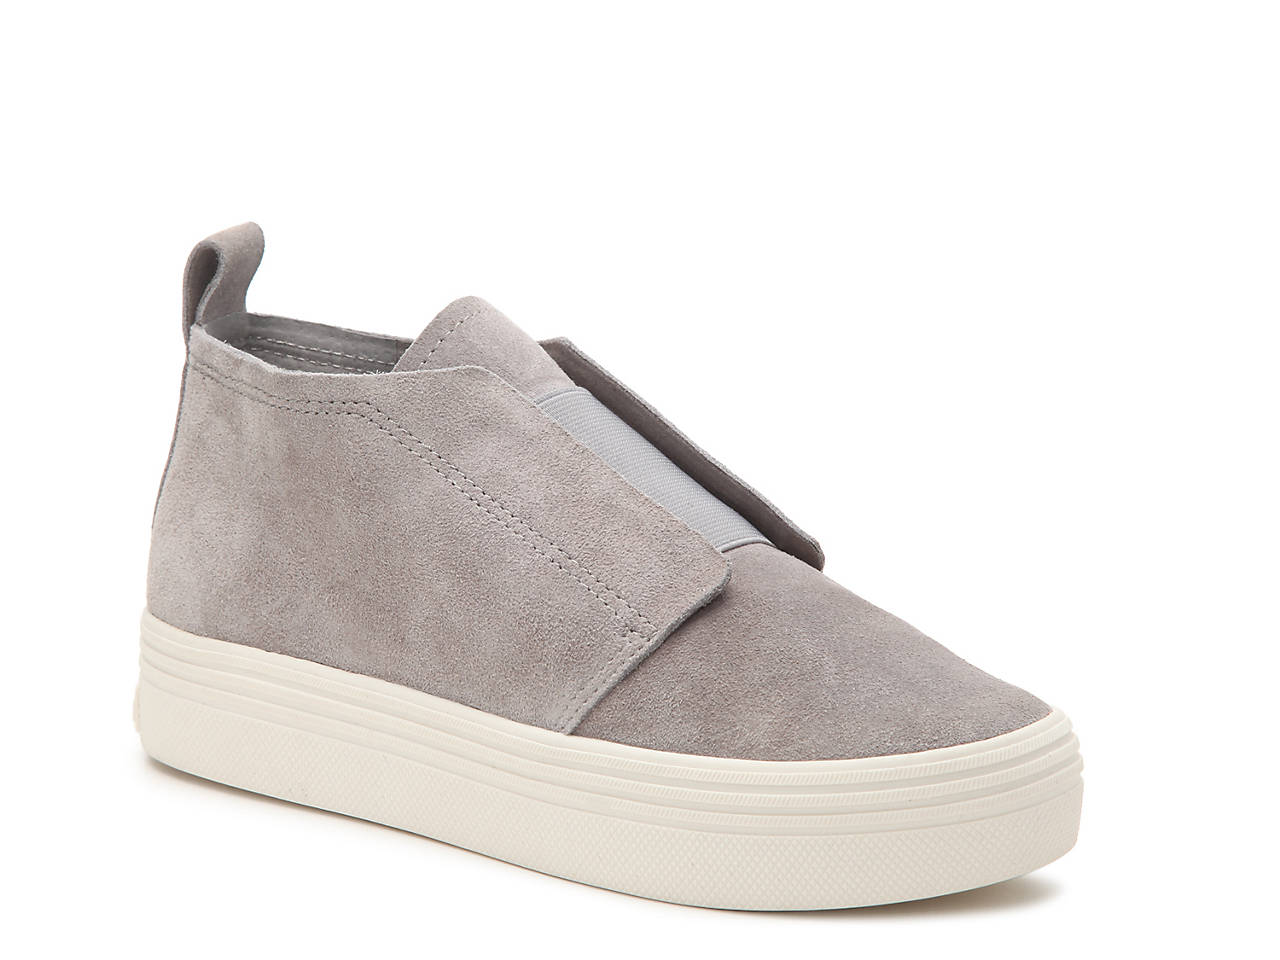 ced29d3b411 Dolce Vita Tait Platform Slip-On Sneaker Women s Shoes